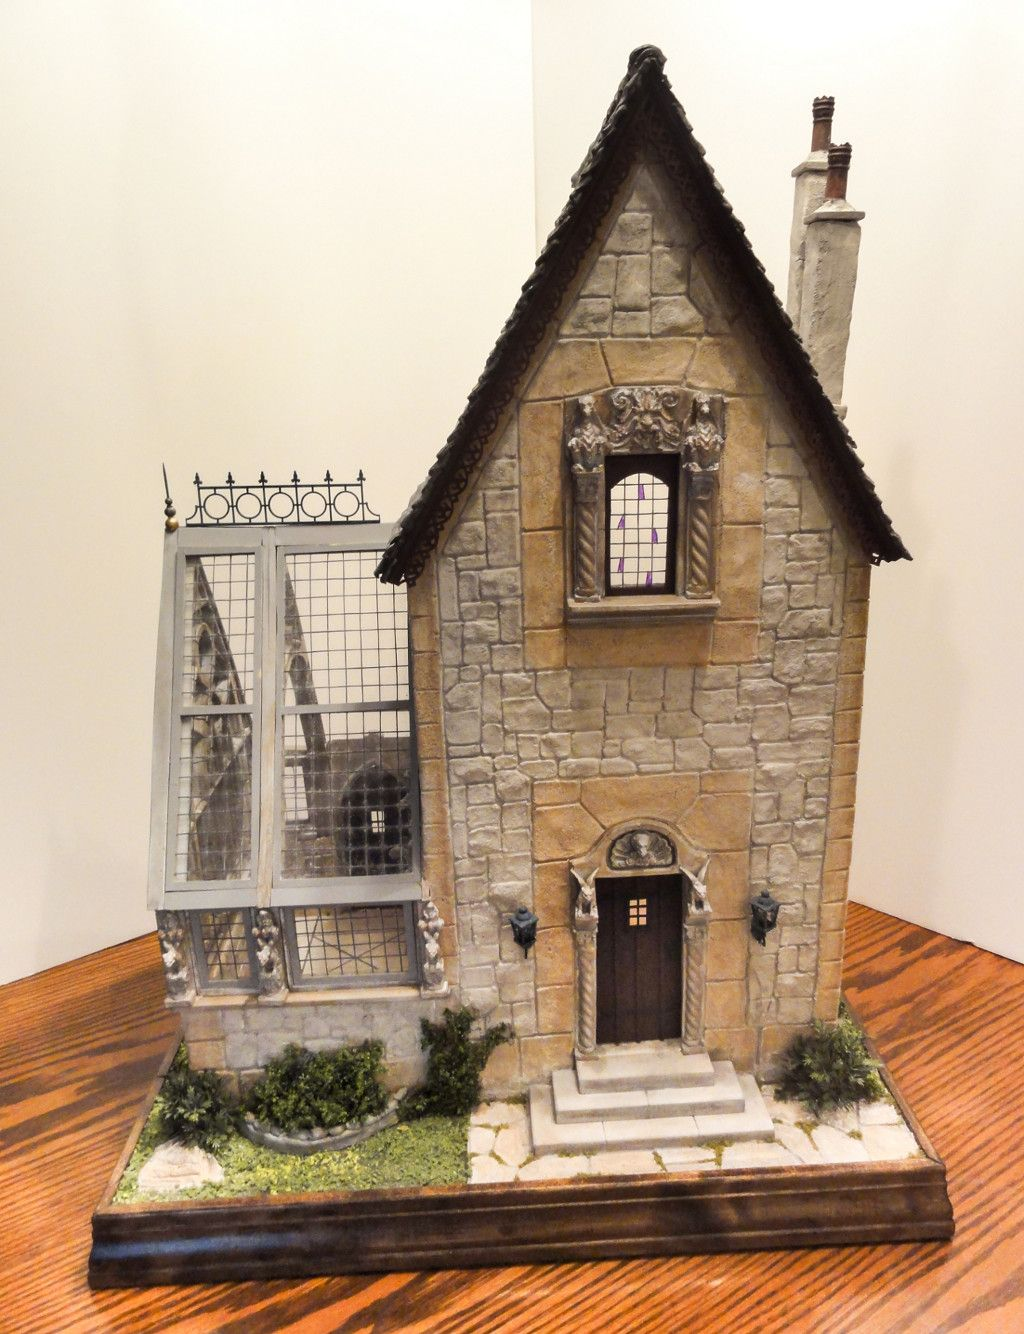 Medieval Hunting Lodge And Conservatory Re Pinned From Miniature House By BE